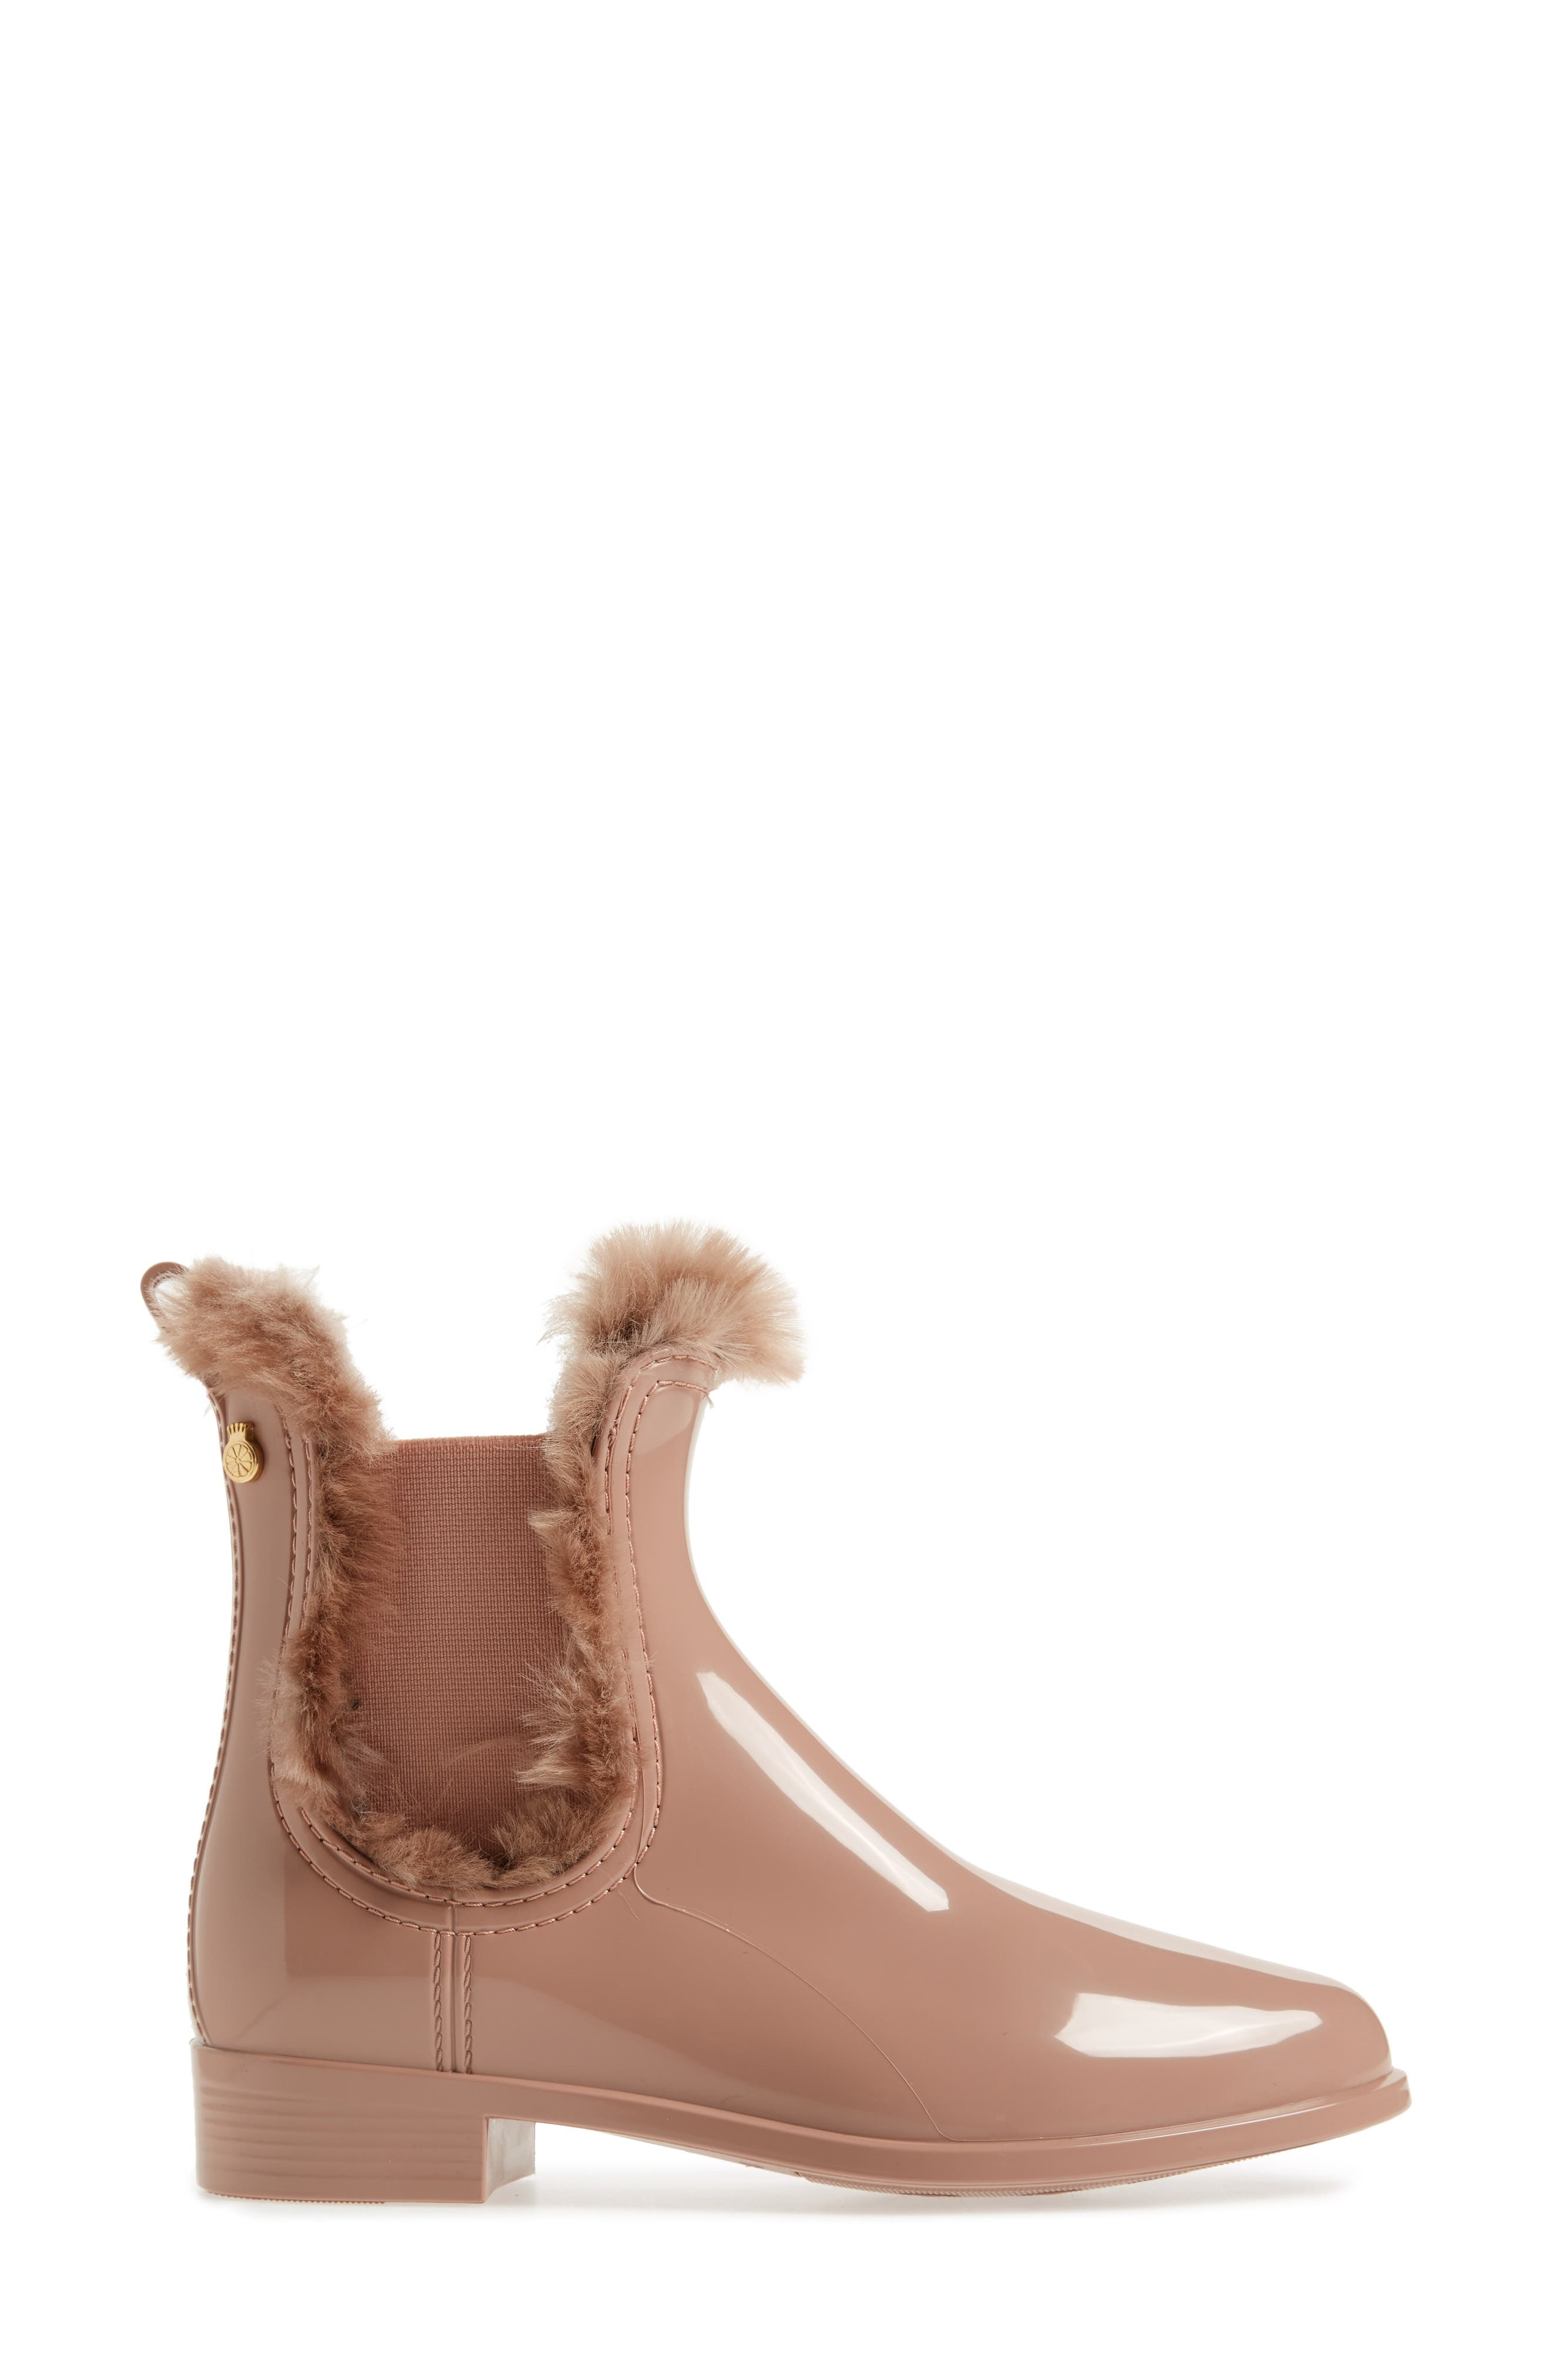 Aisha Waterproof Chelsea Boot with Faux Fur Lining,                             Alternate thumbnail 3, color,                             ROSE MATTE